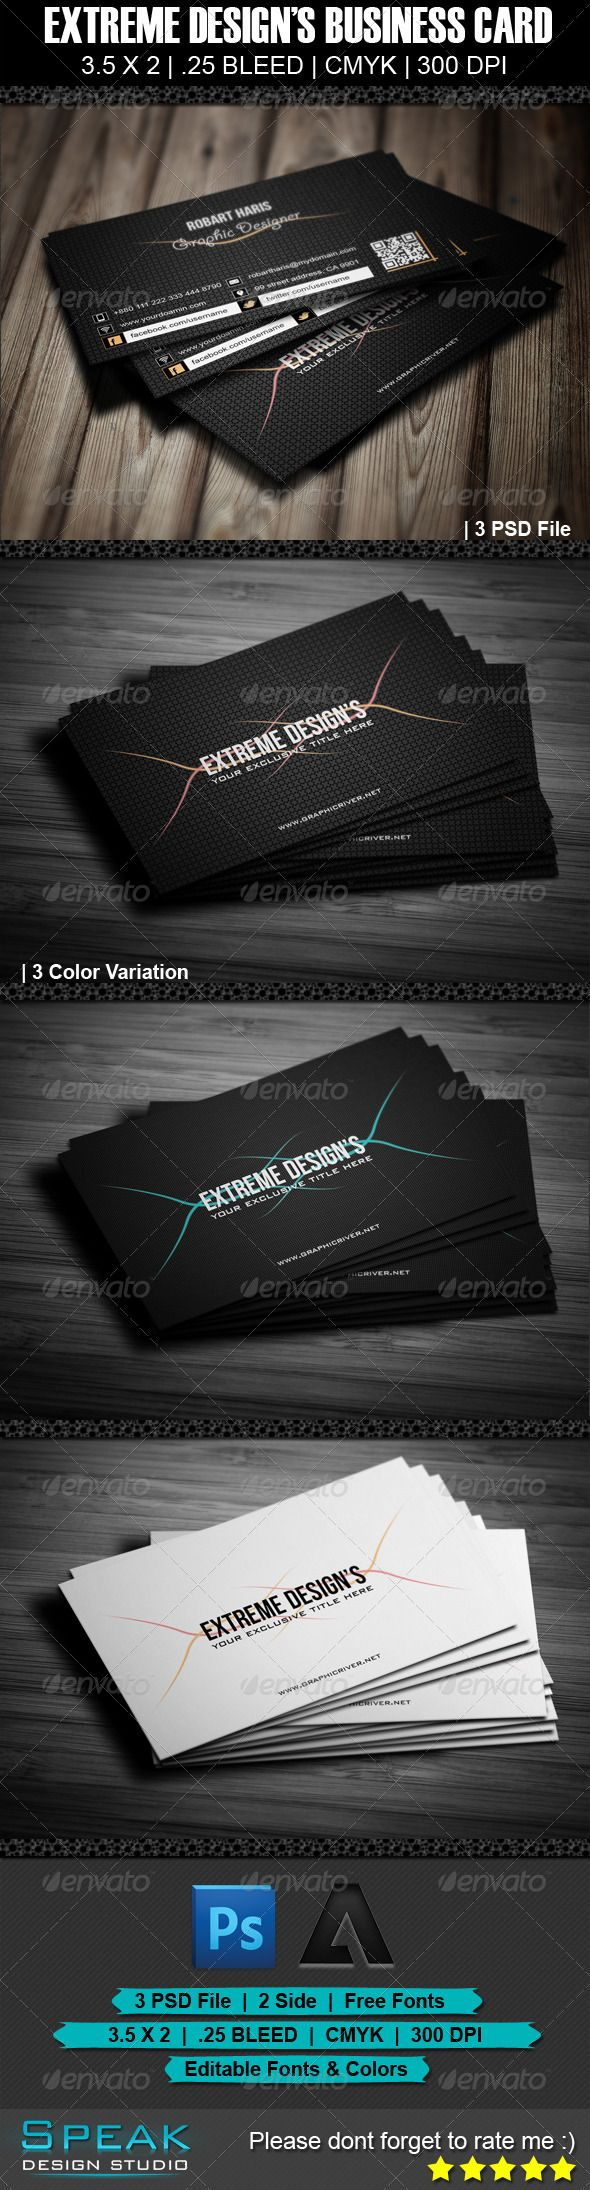 Business cards in zurich choice image card design and card template business cards in zurich choice image card design and card template business cards zurich images card reheart Image collections